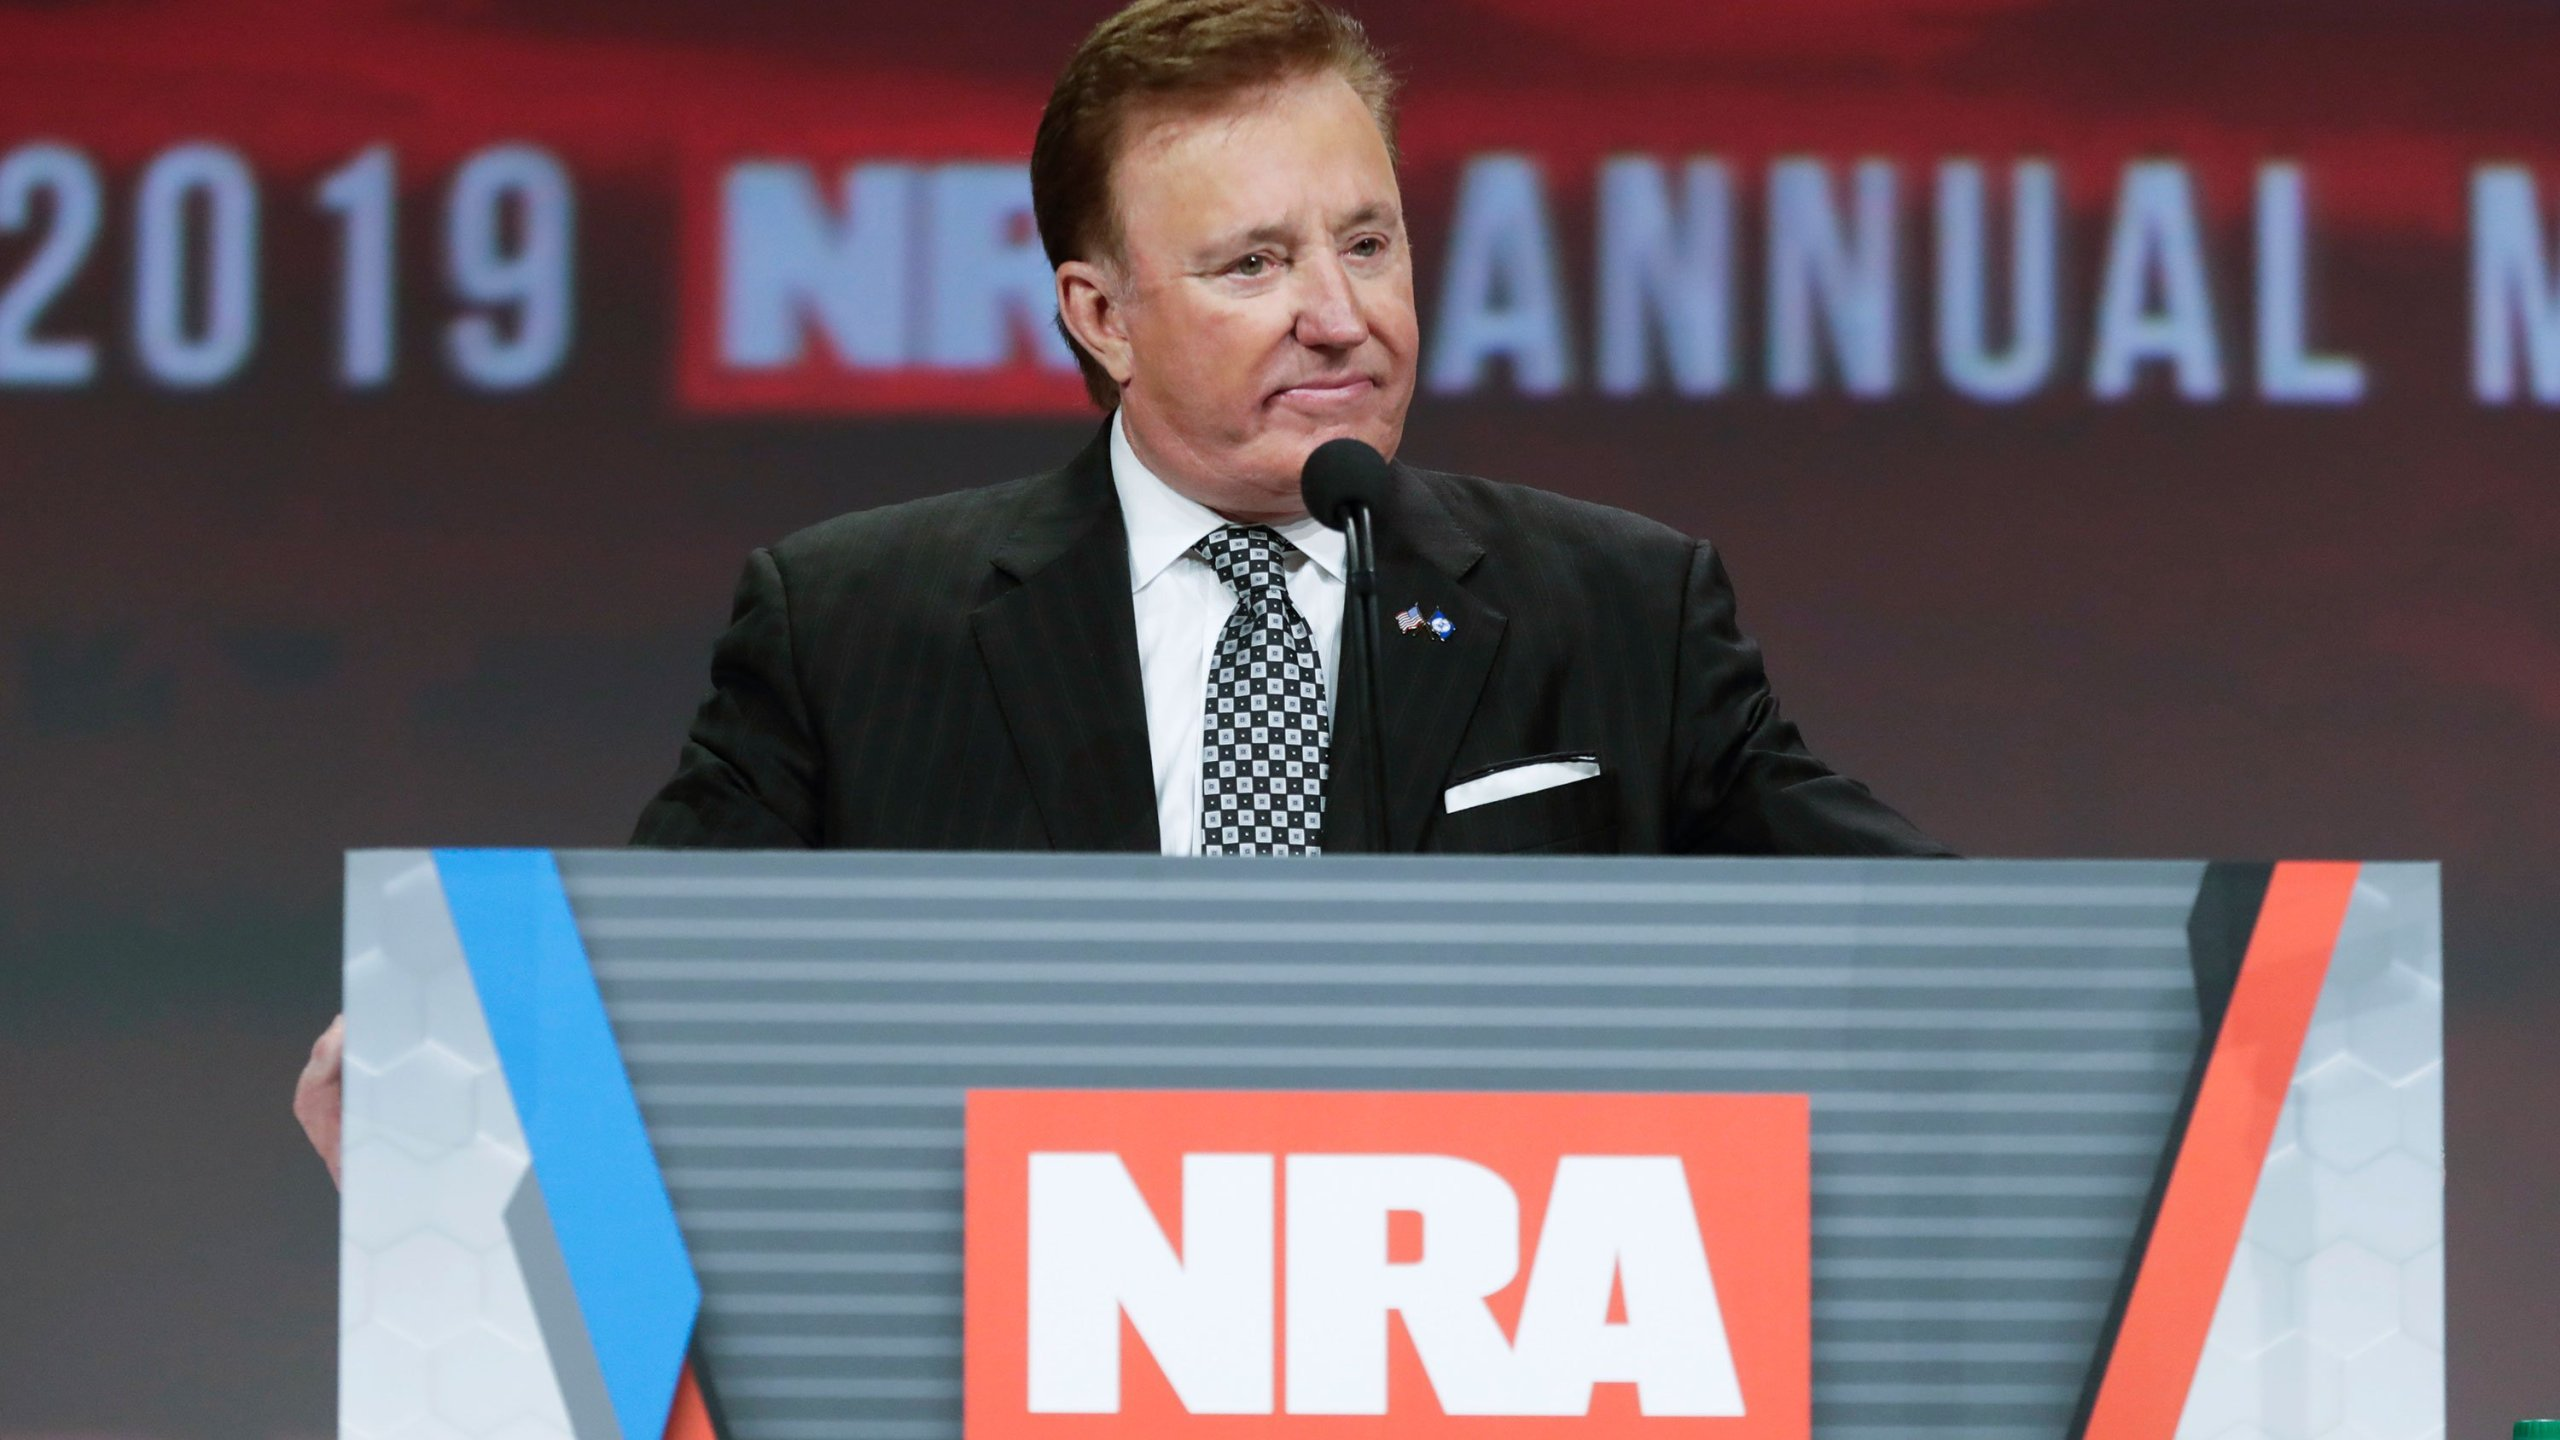 Richard Childress speaks at a National Rifle Association event in this undated photo. (Credit: Michael Conroy/AP via CNN)